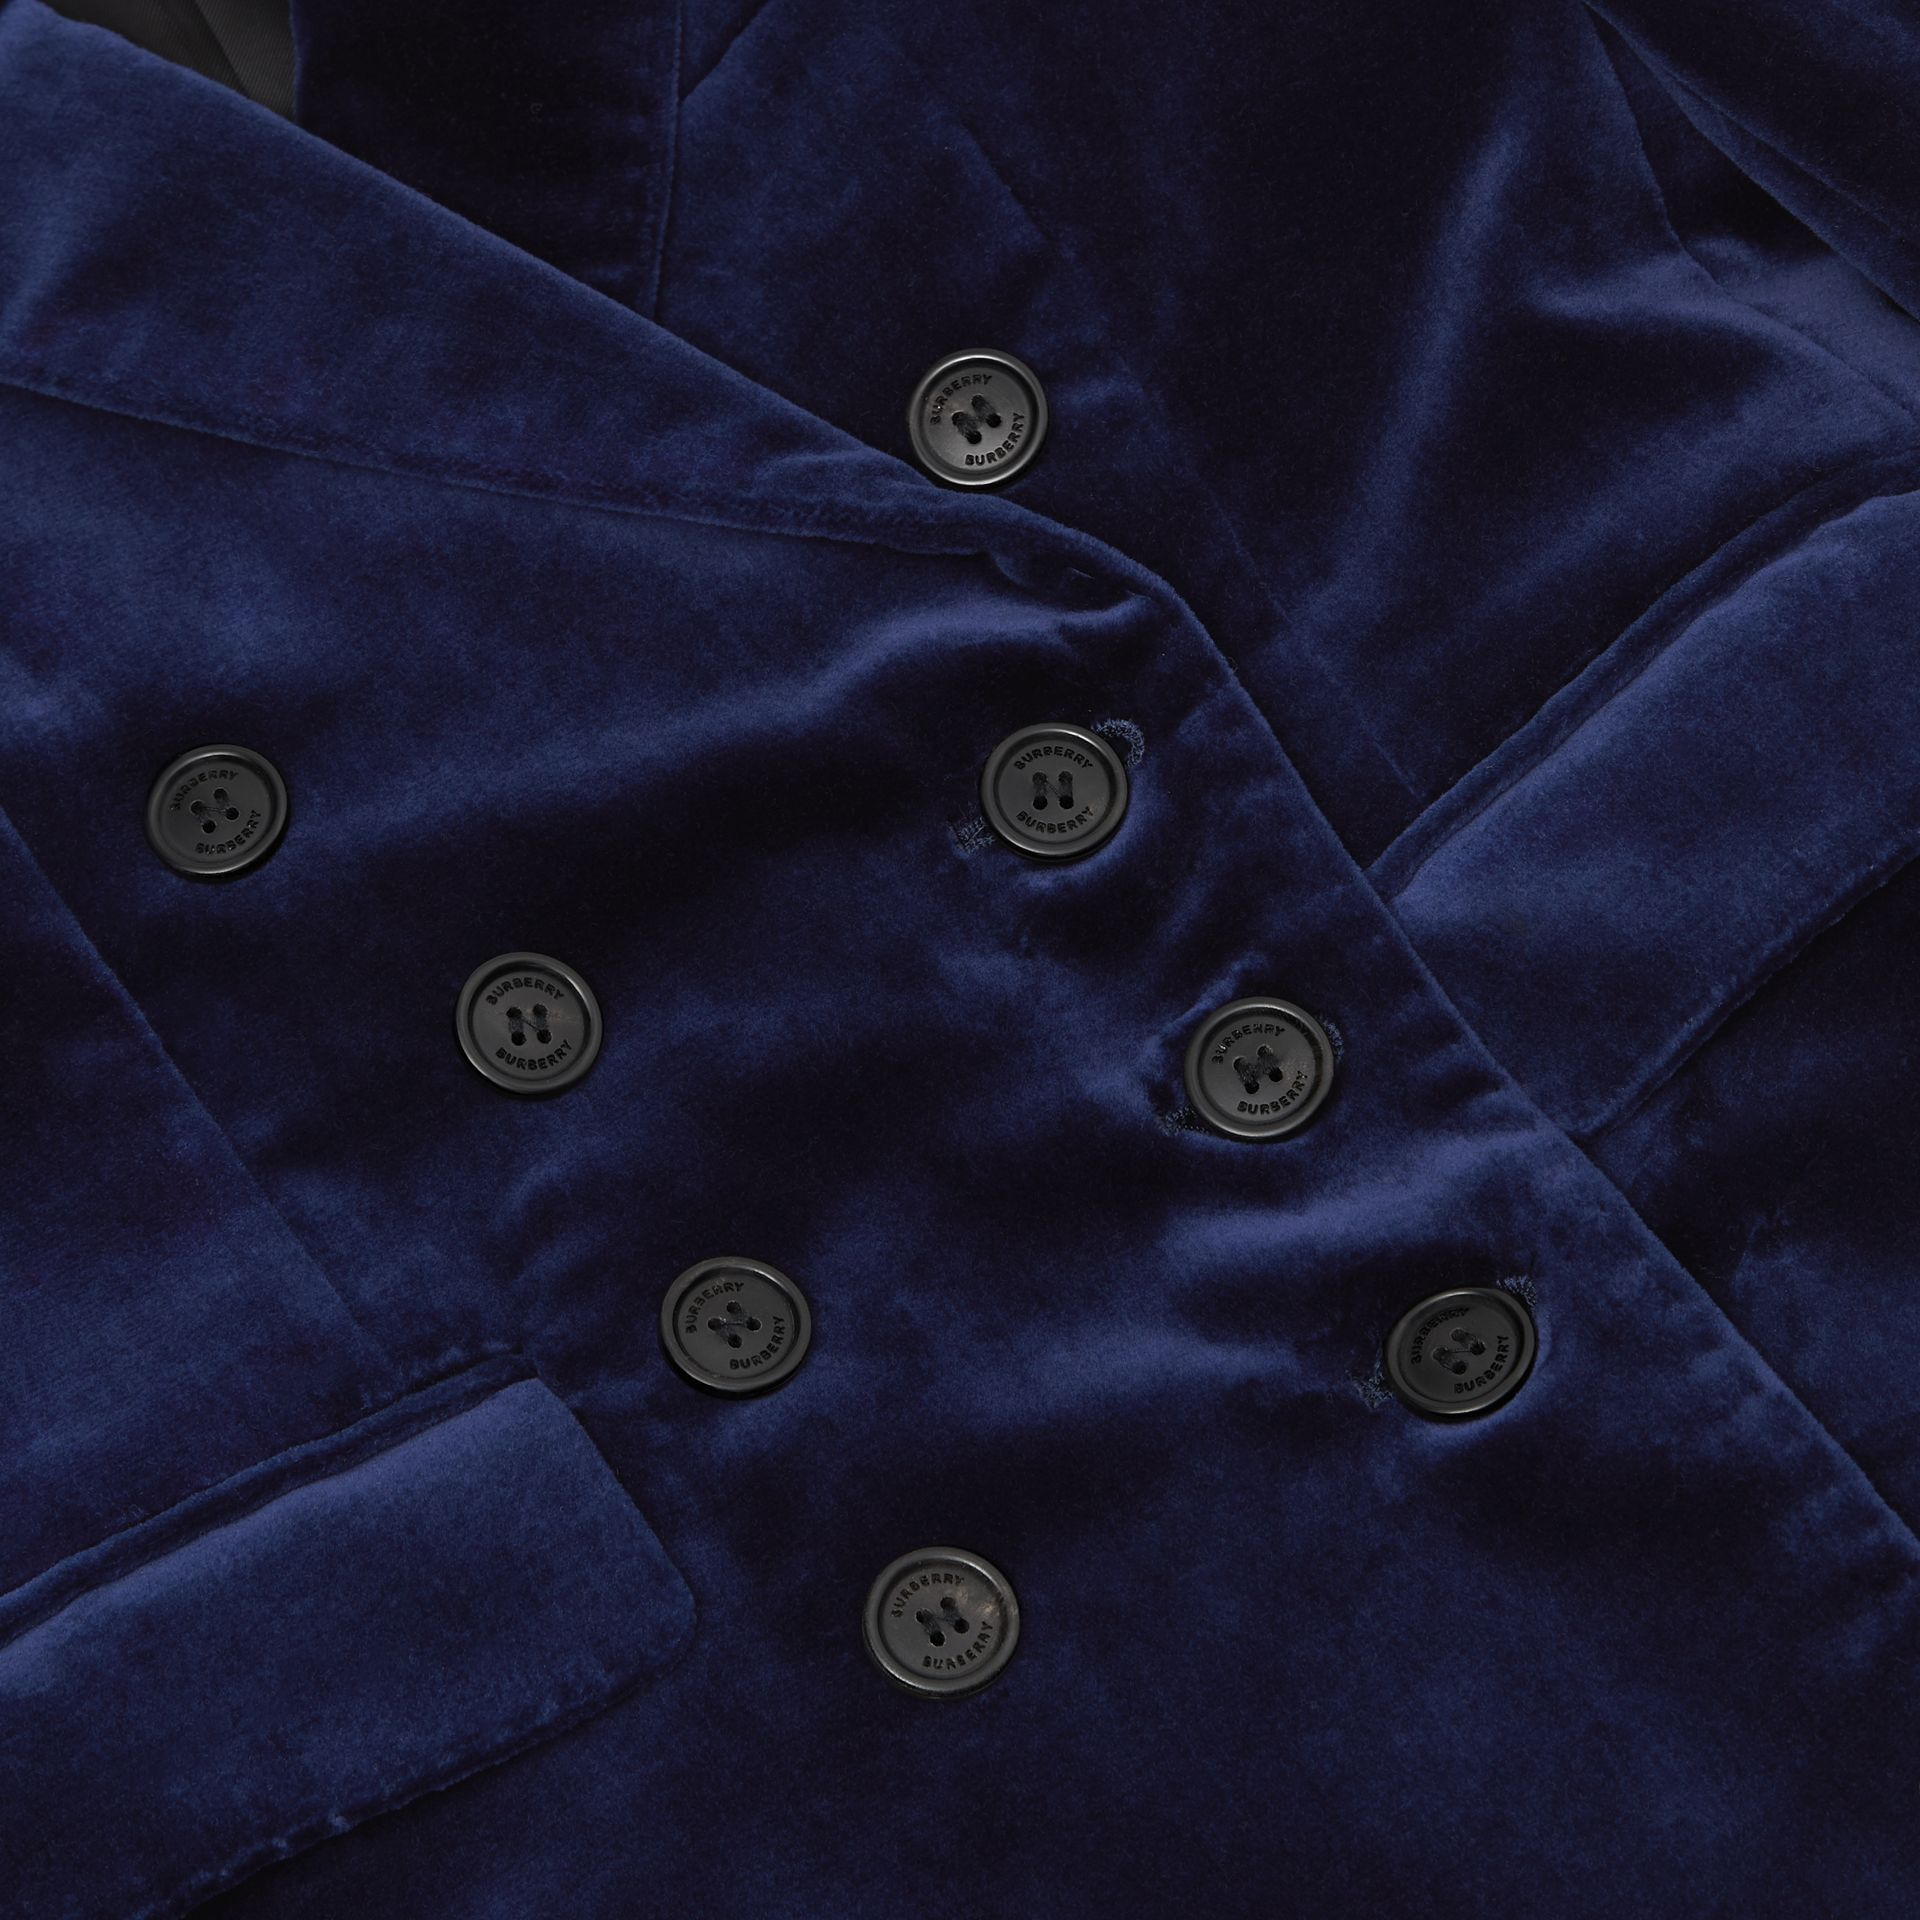 Velvet Double-breasted Blazer in Midnight Blue | Burberry - gallery image 1